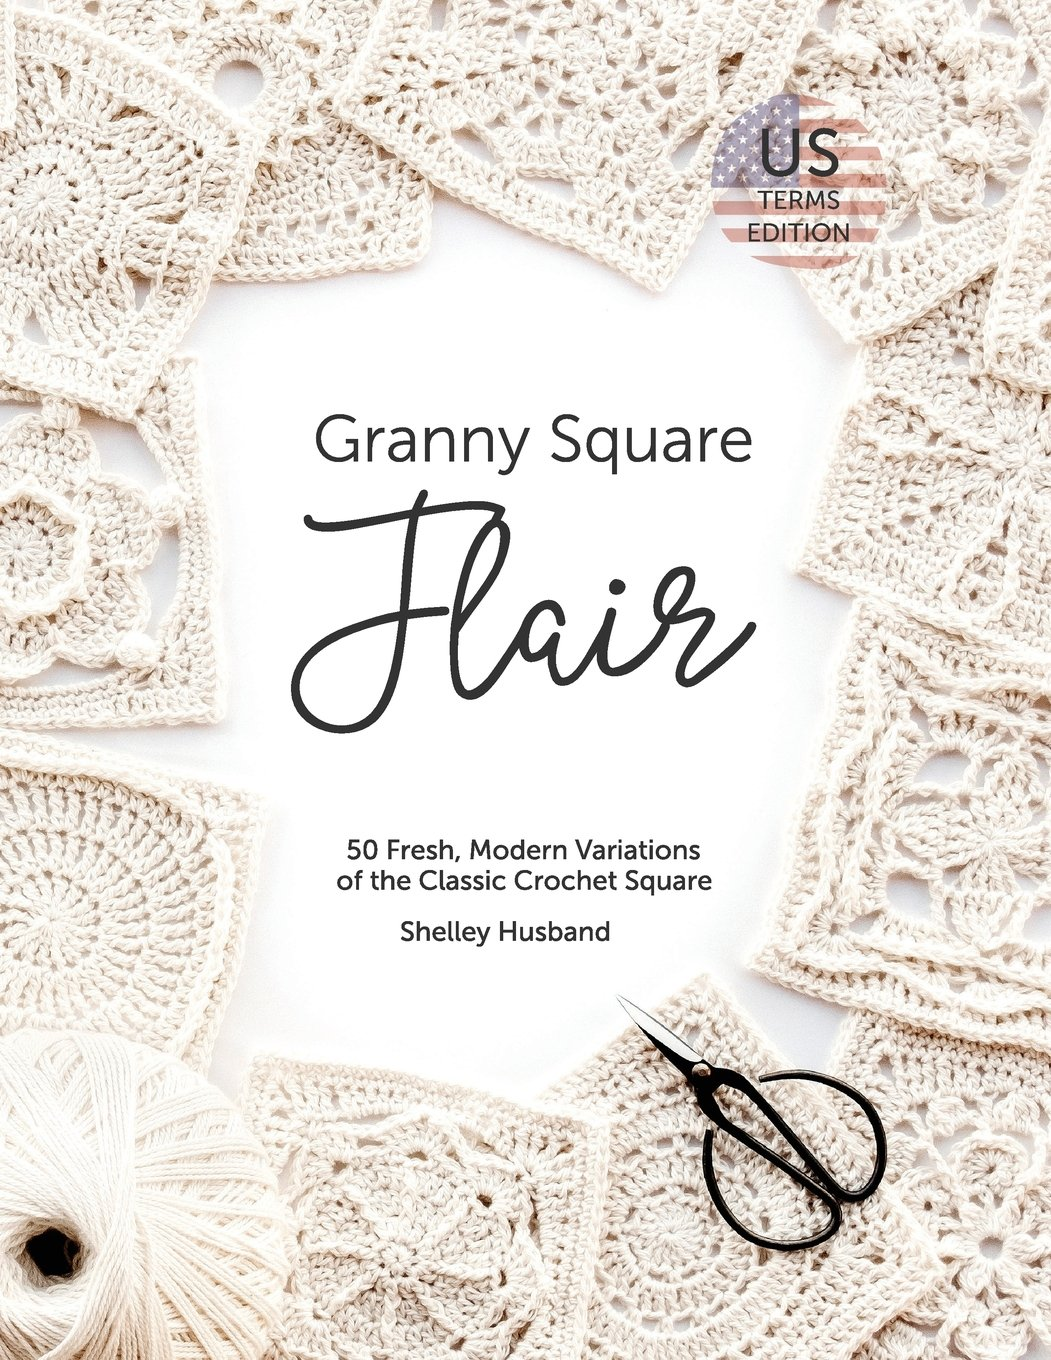 Granny Square Flair Us Terms Edition 50 Fresh Modern Variations Of